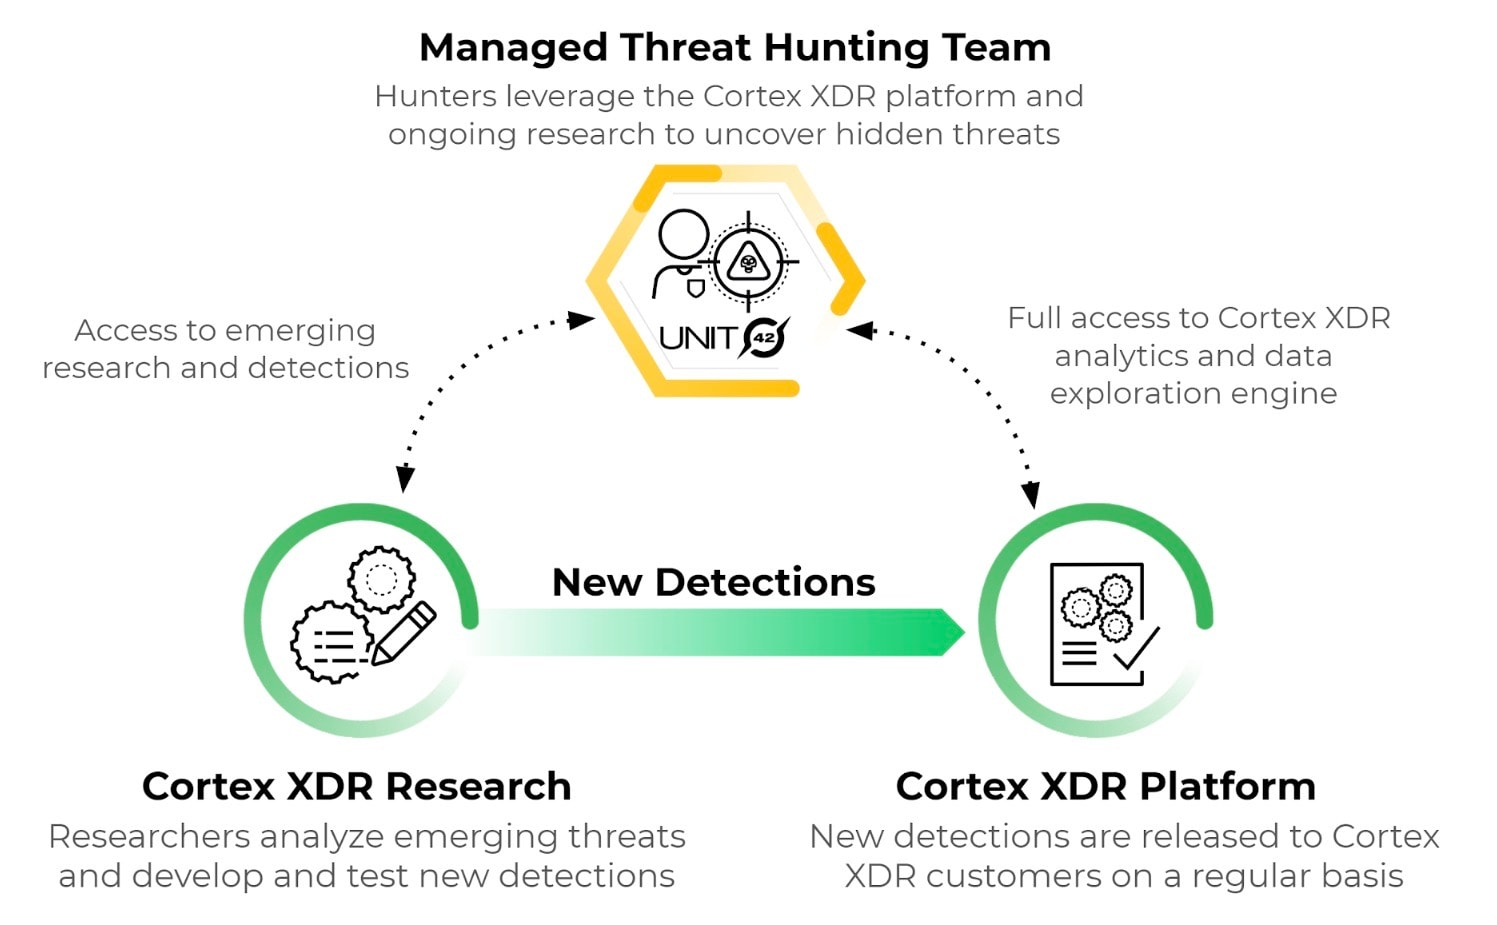 This image illustrates the elements that contribute to new detections in the Cortex XDR Managed Threat Hunting service. This includes Cortex XDR Research, the Cortex XDR Platform and the Managed Threat Hunting Team.